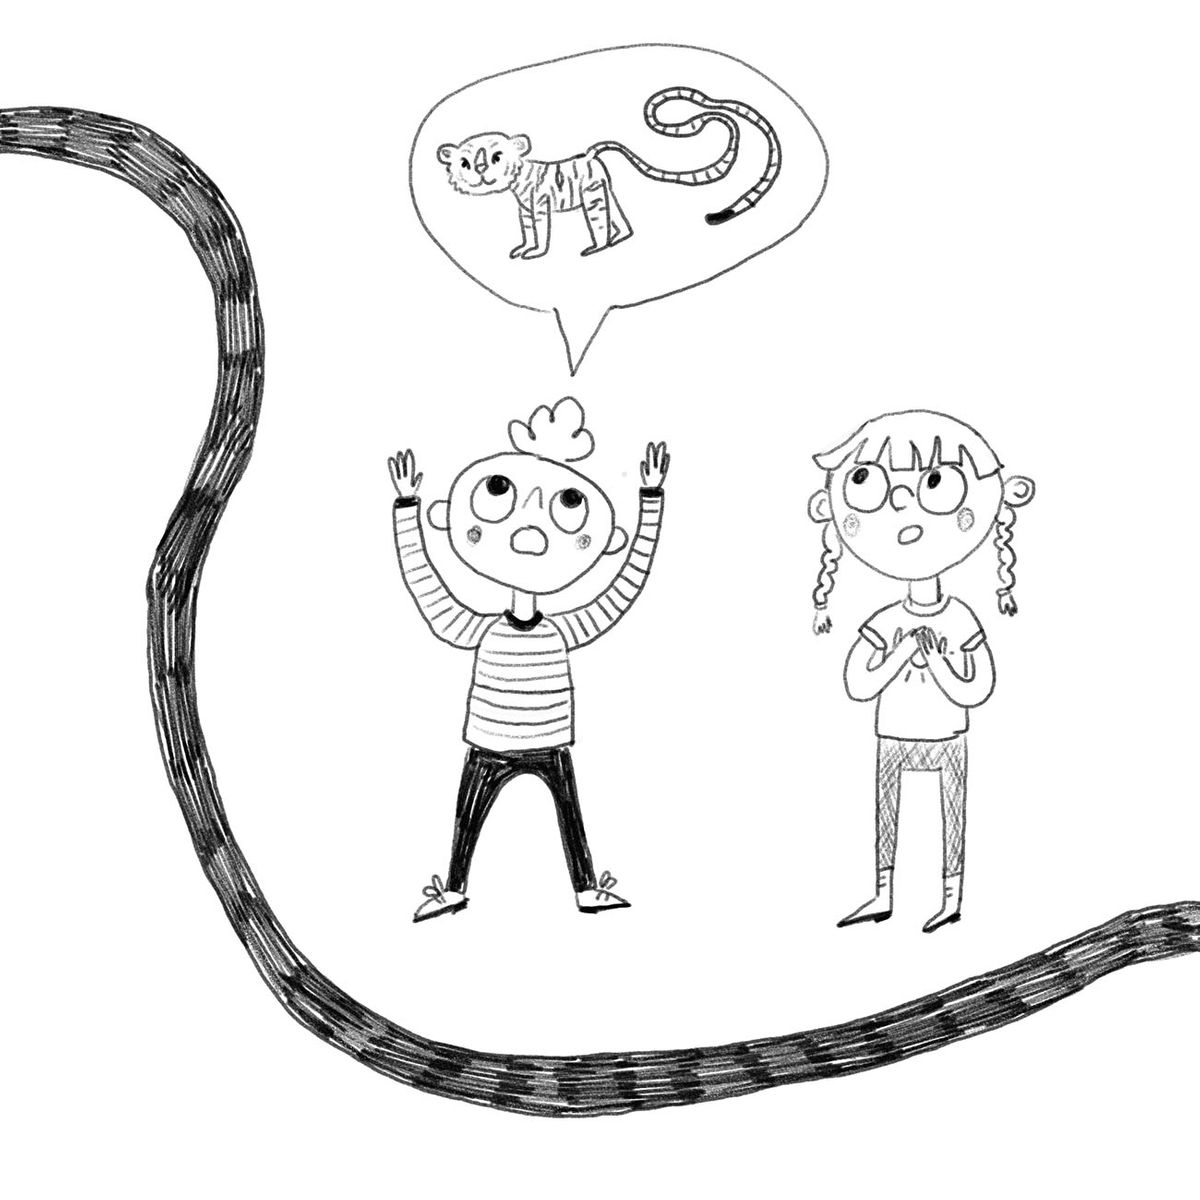 the snake tail4